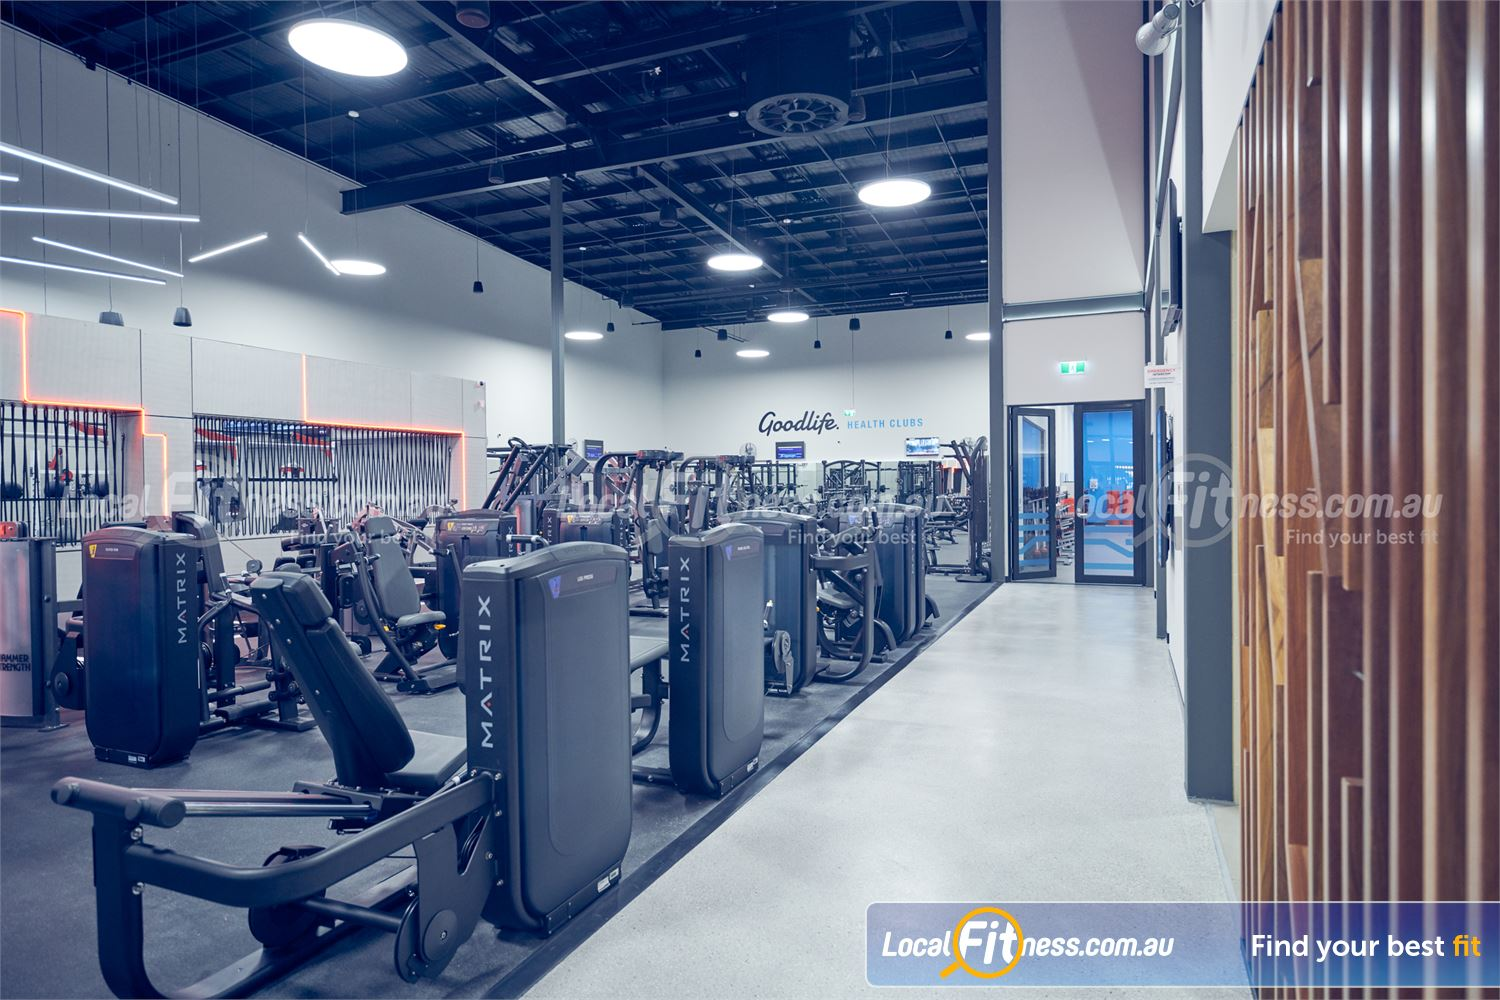 Goodlife Health Clubs Near Croydon South Enjoy state of the art equipment coming to Goodlife Ringwood gym.